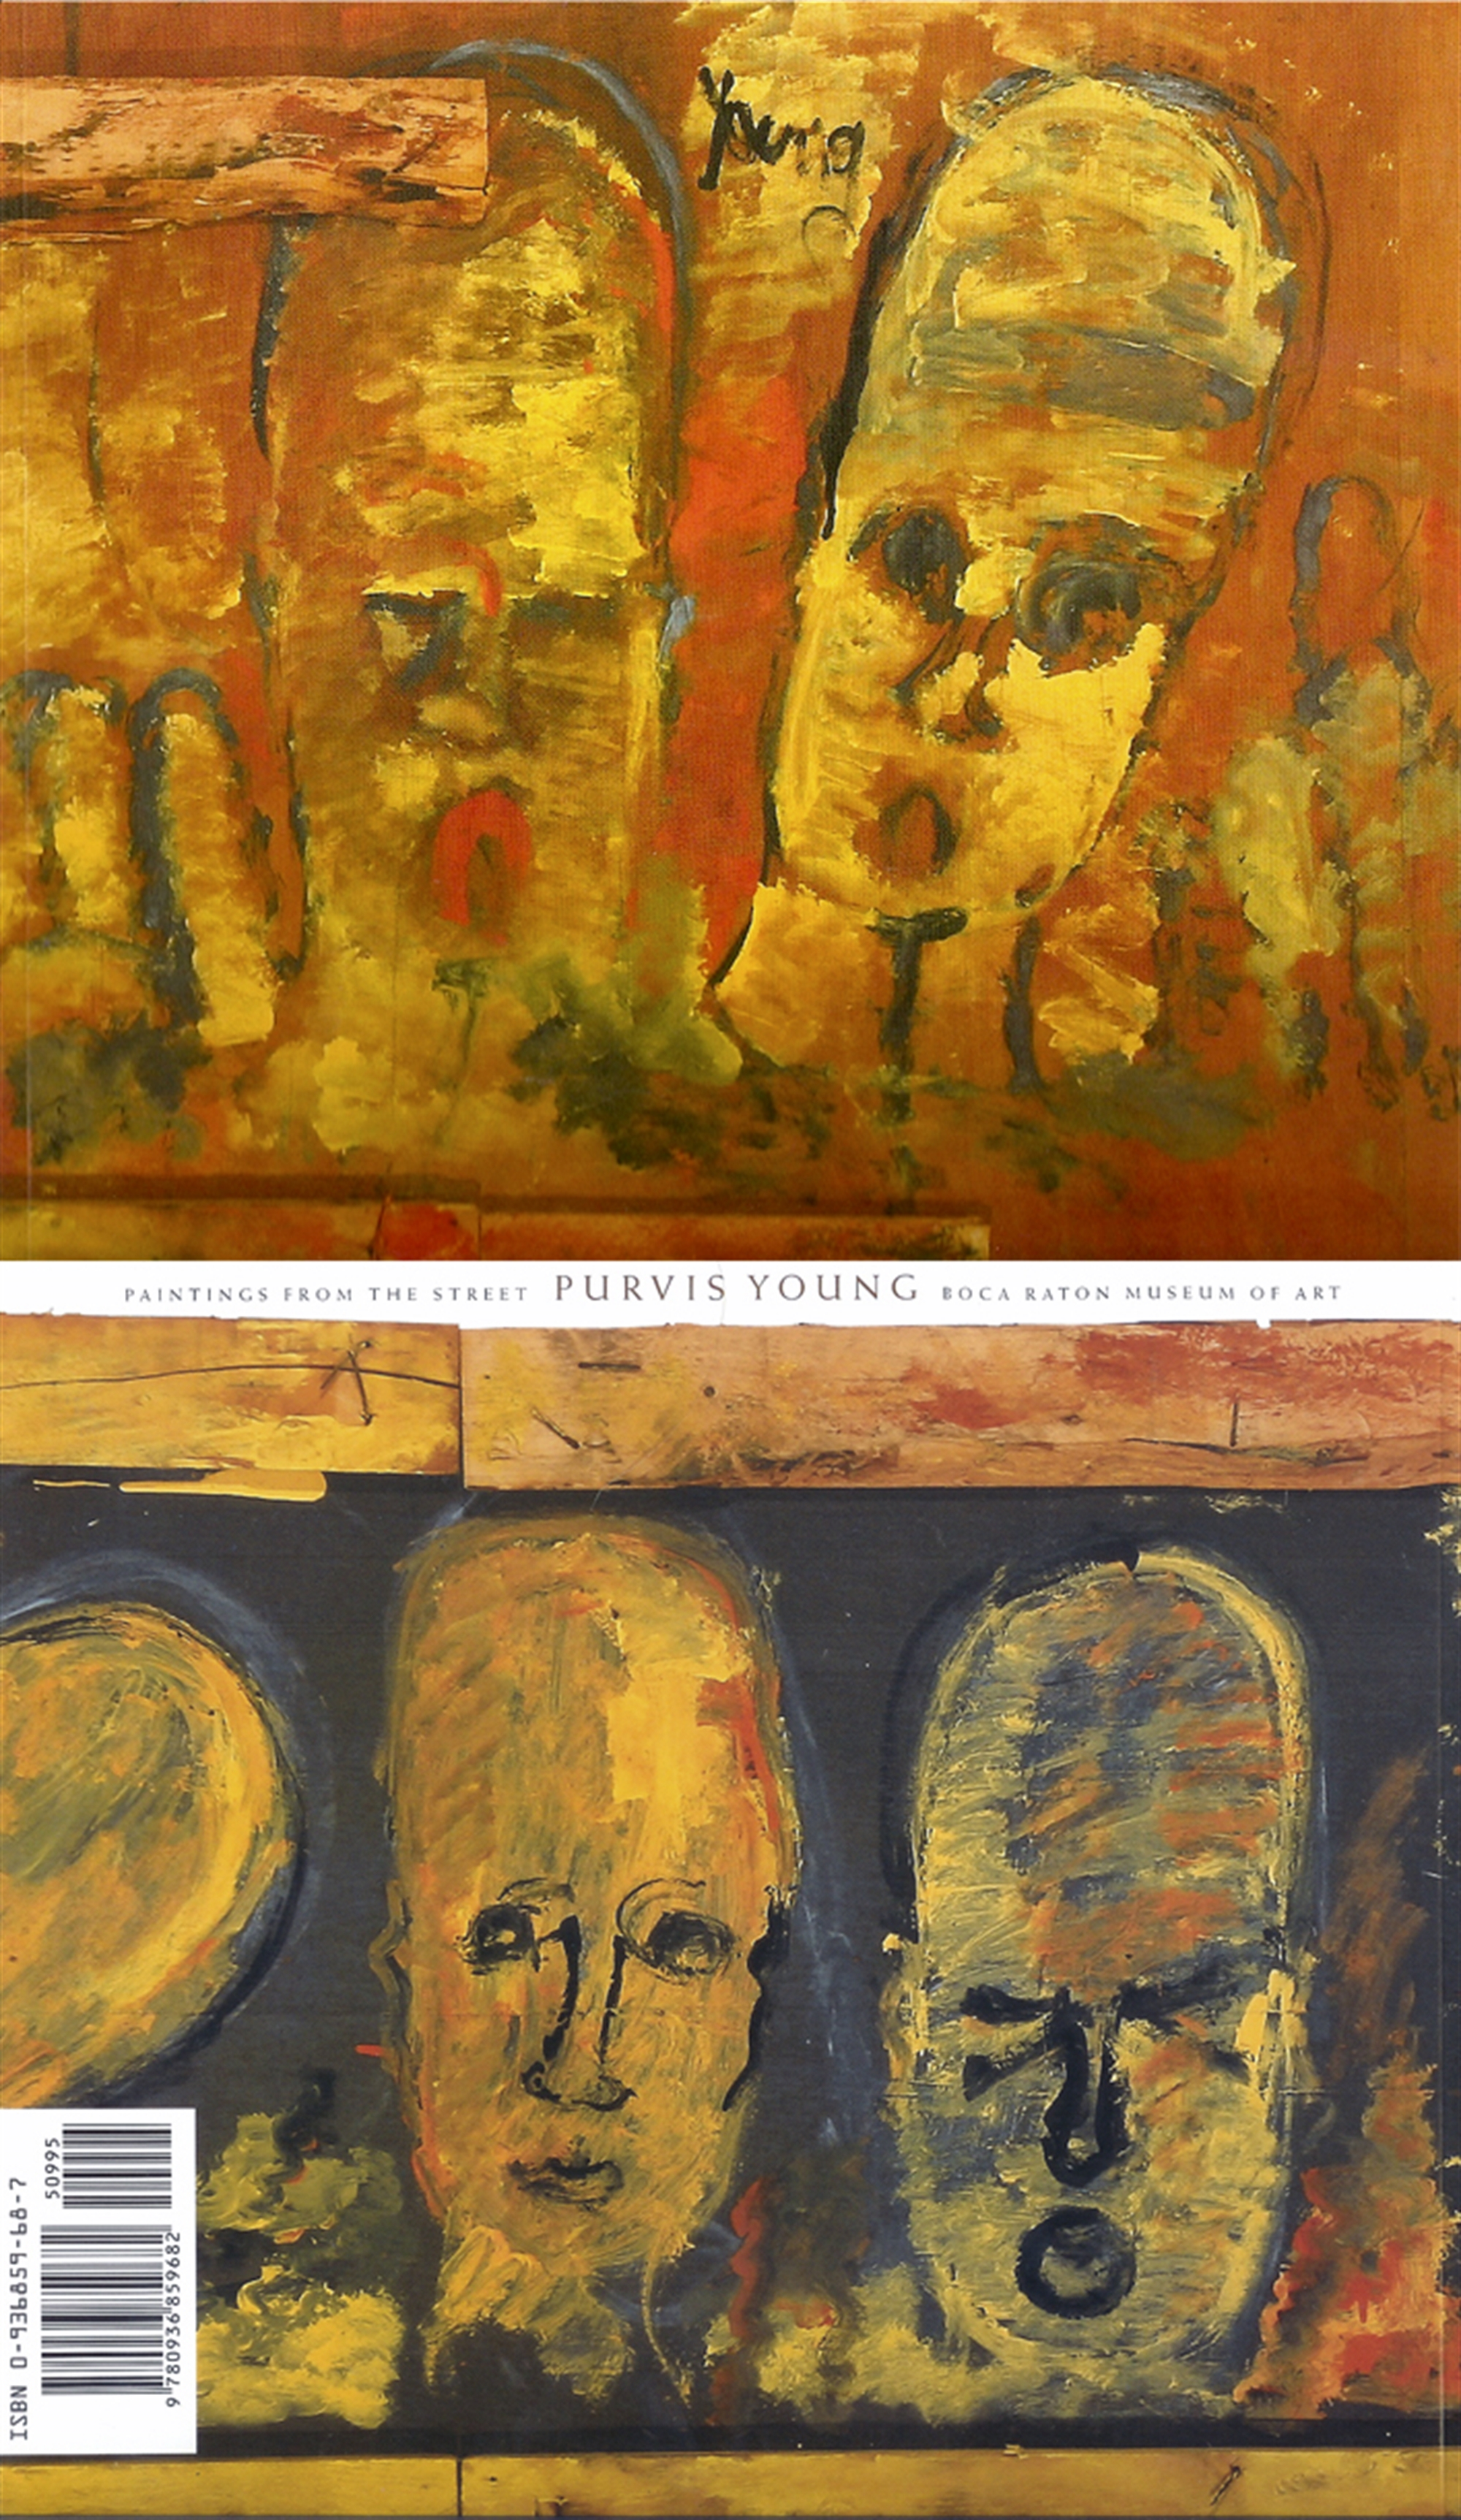 """Boca Raton Museum of Art Retrospective: """"Paintings from the Street"""""""